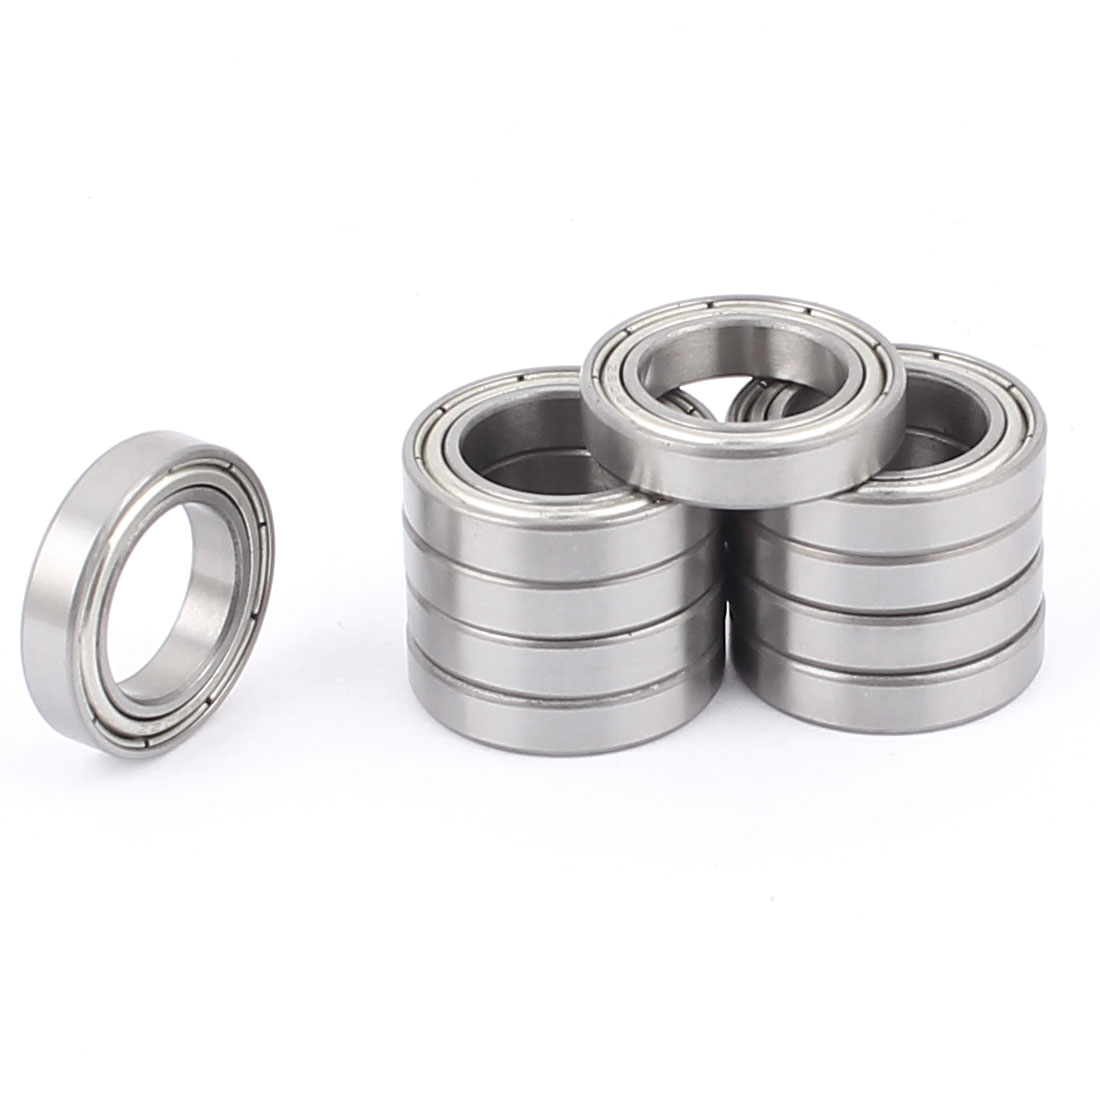 Pack of 10 Balls Bearing 6802Z ID (Inner Diameter 15mm)